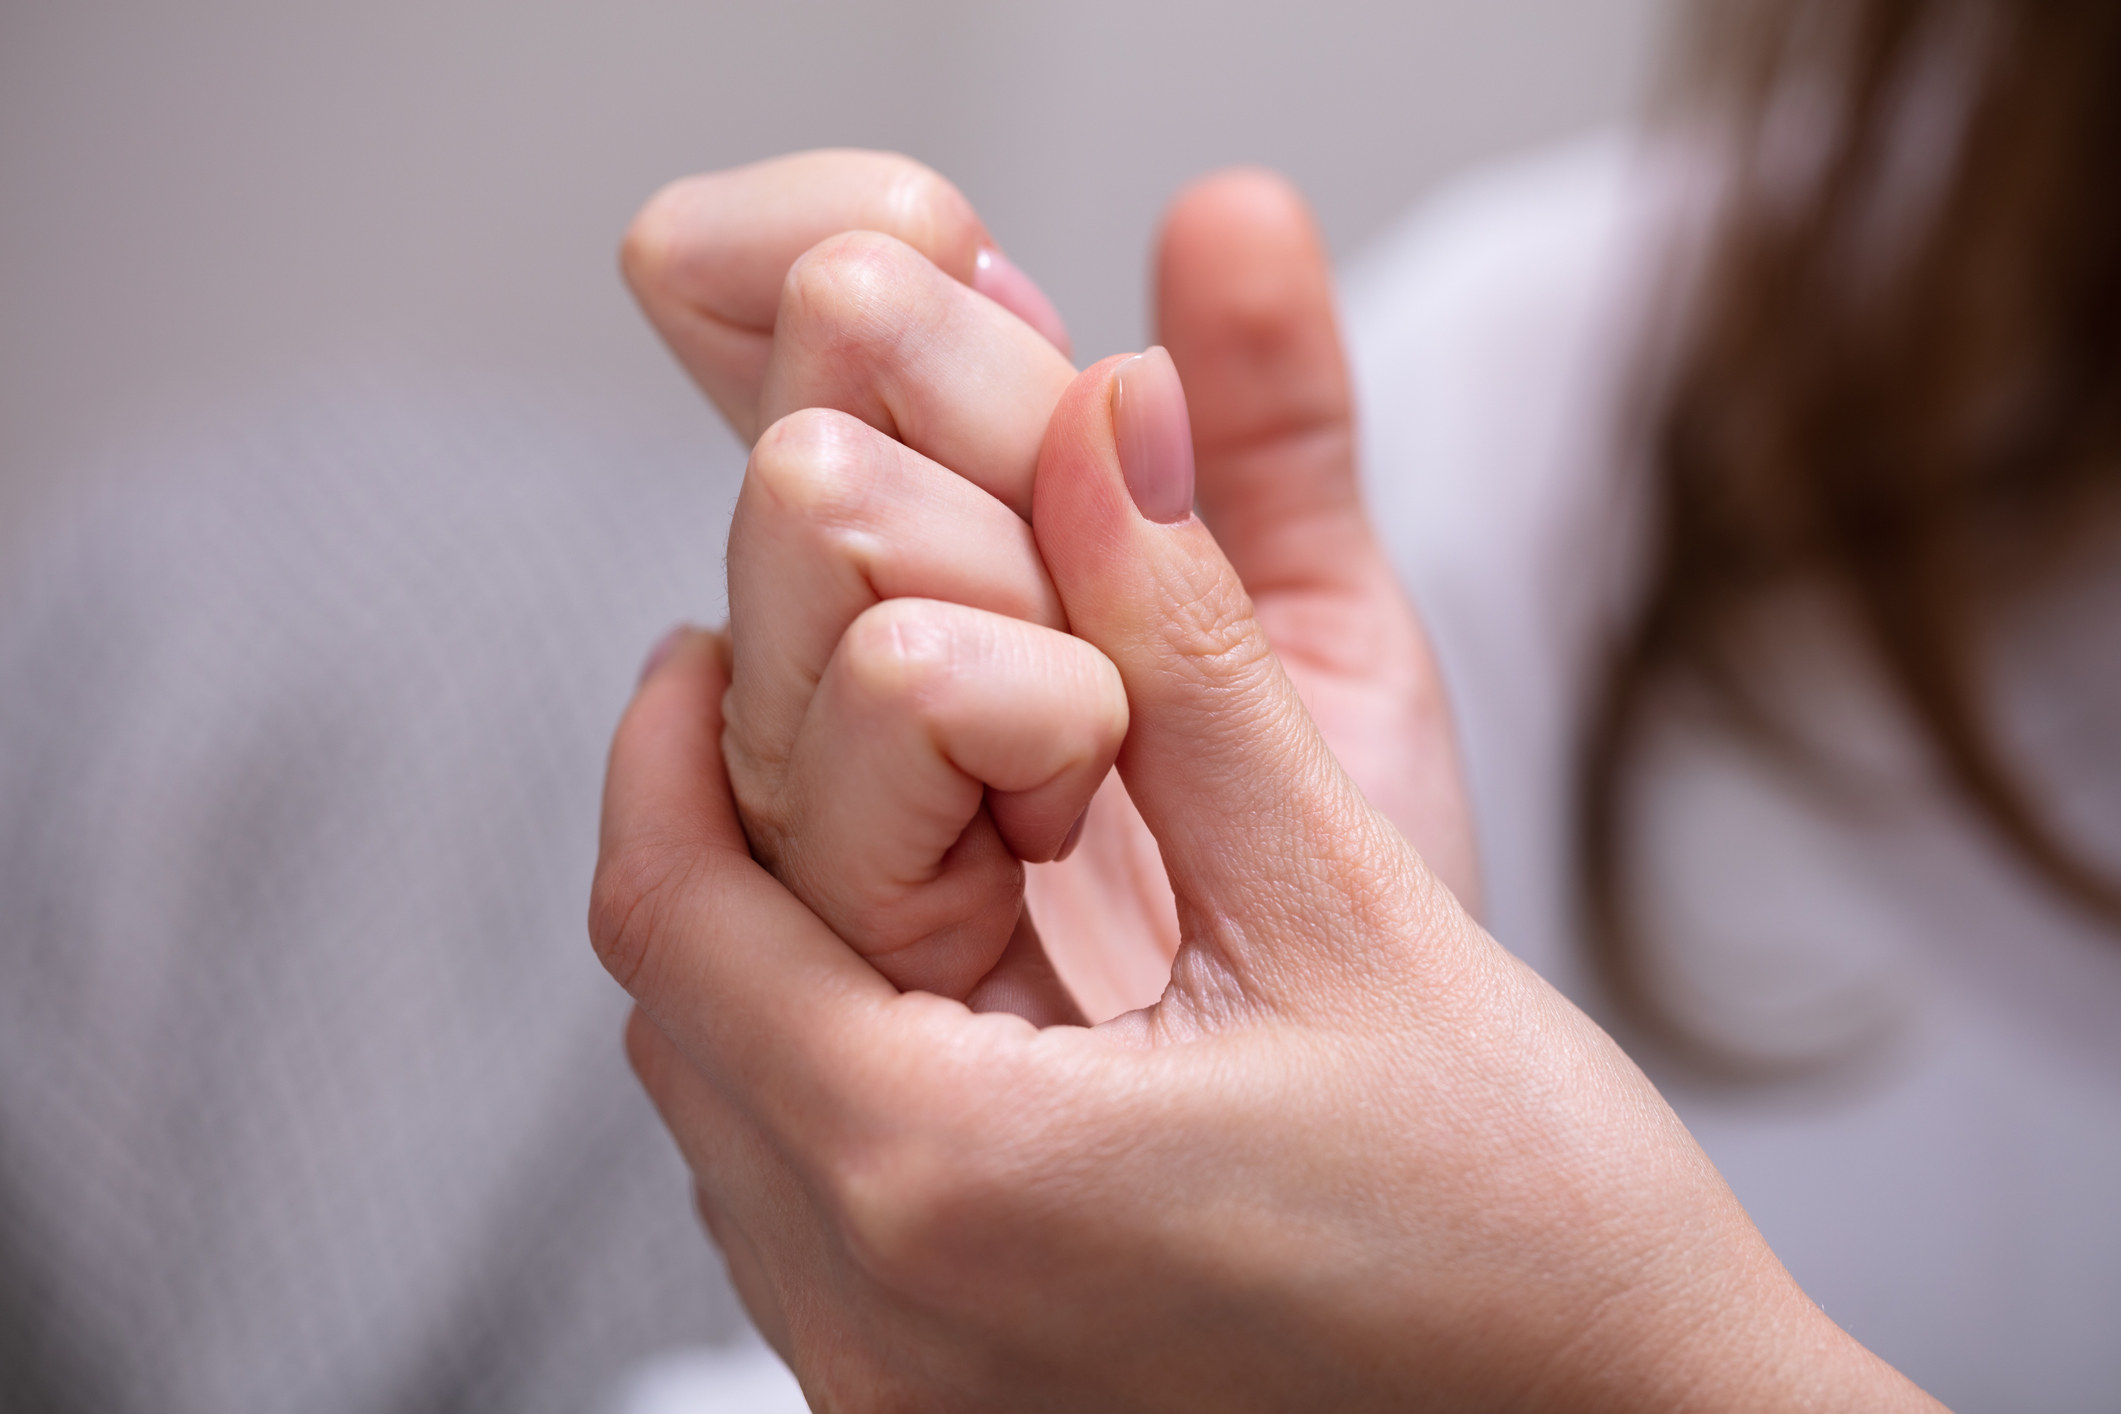 A person cracking knuckles